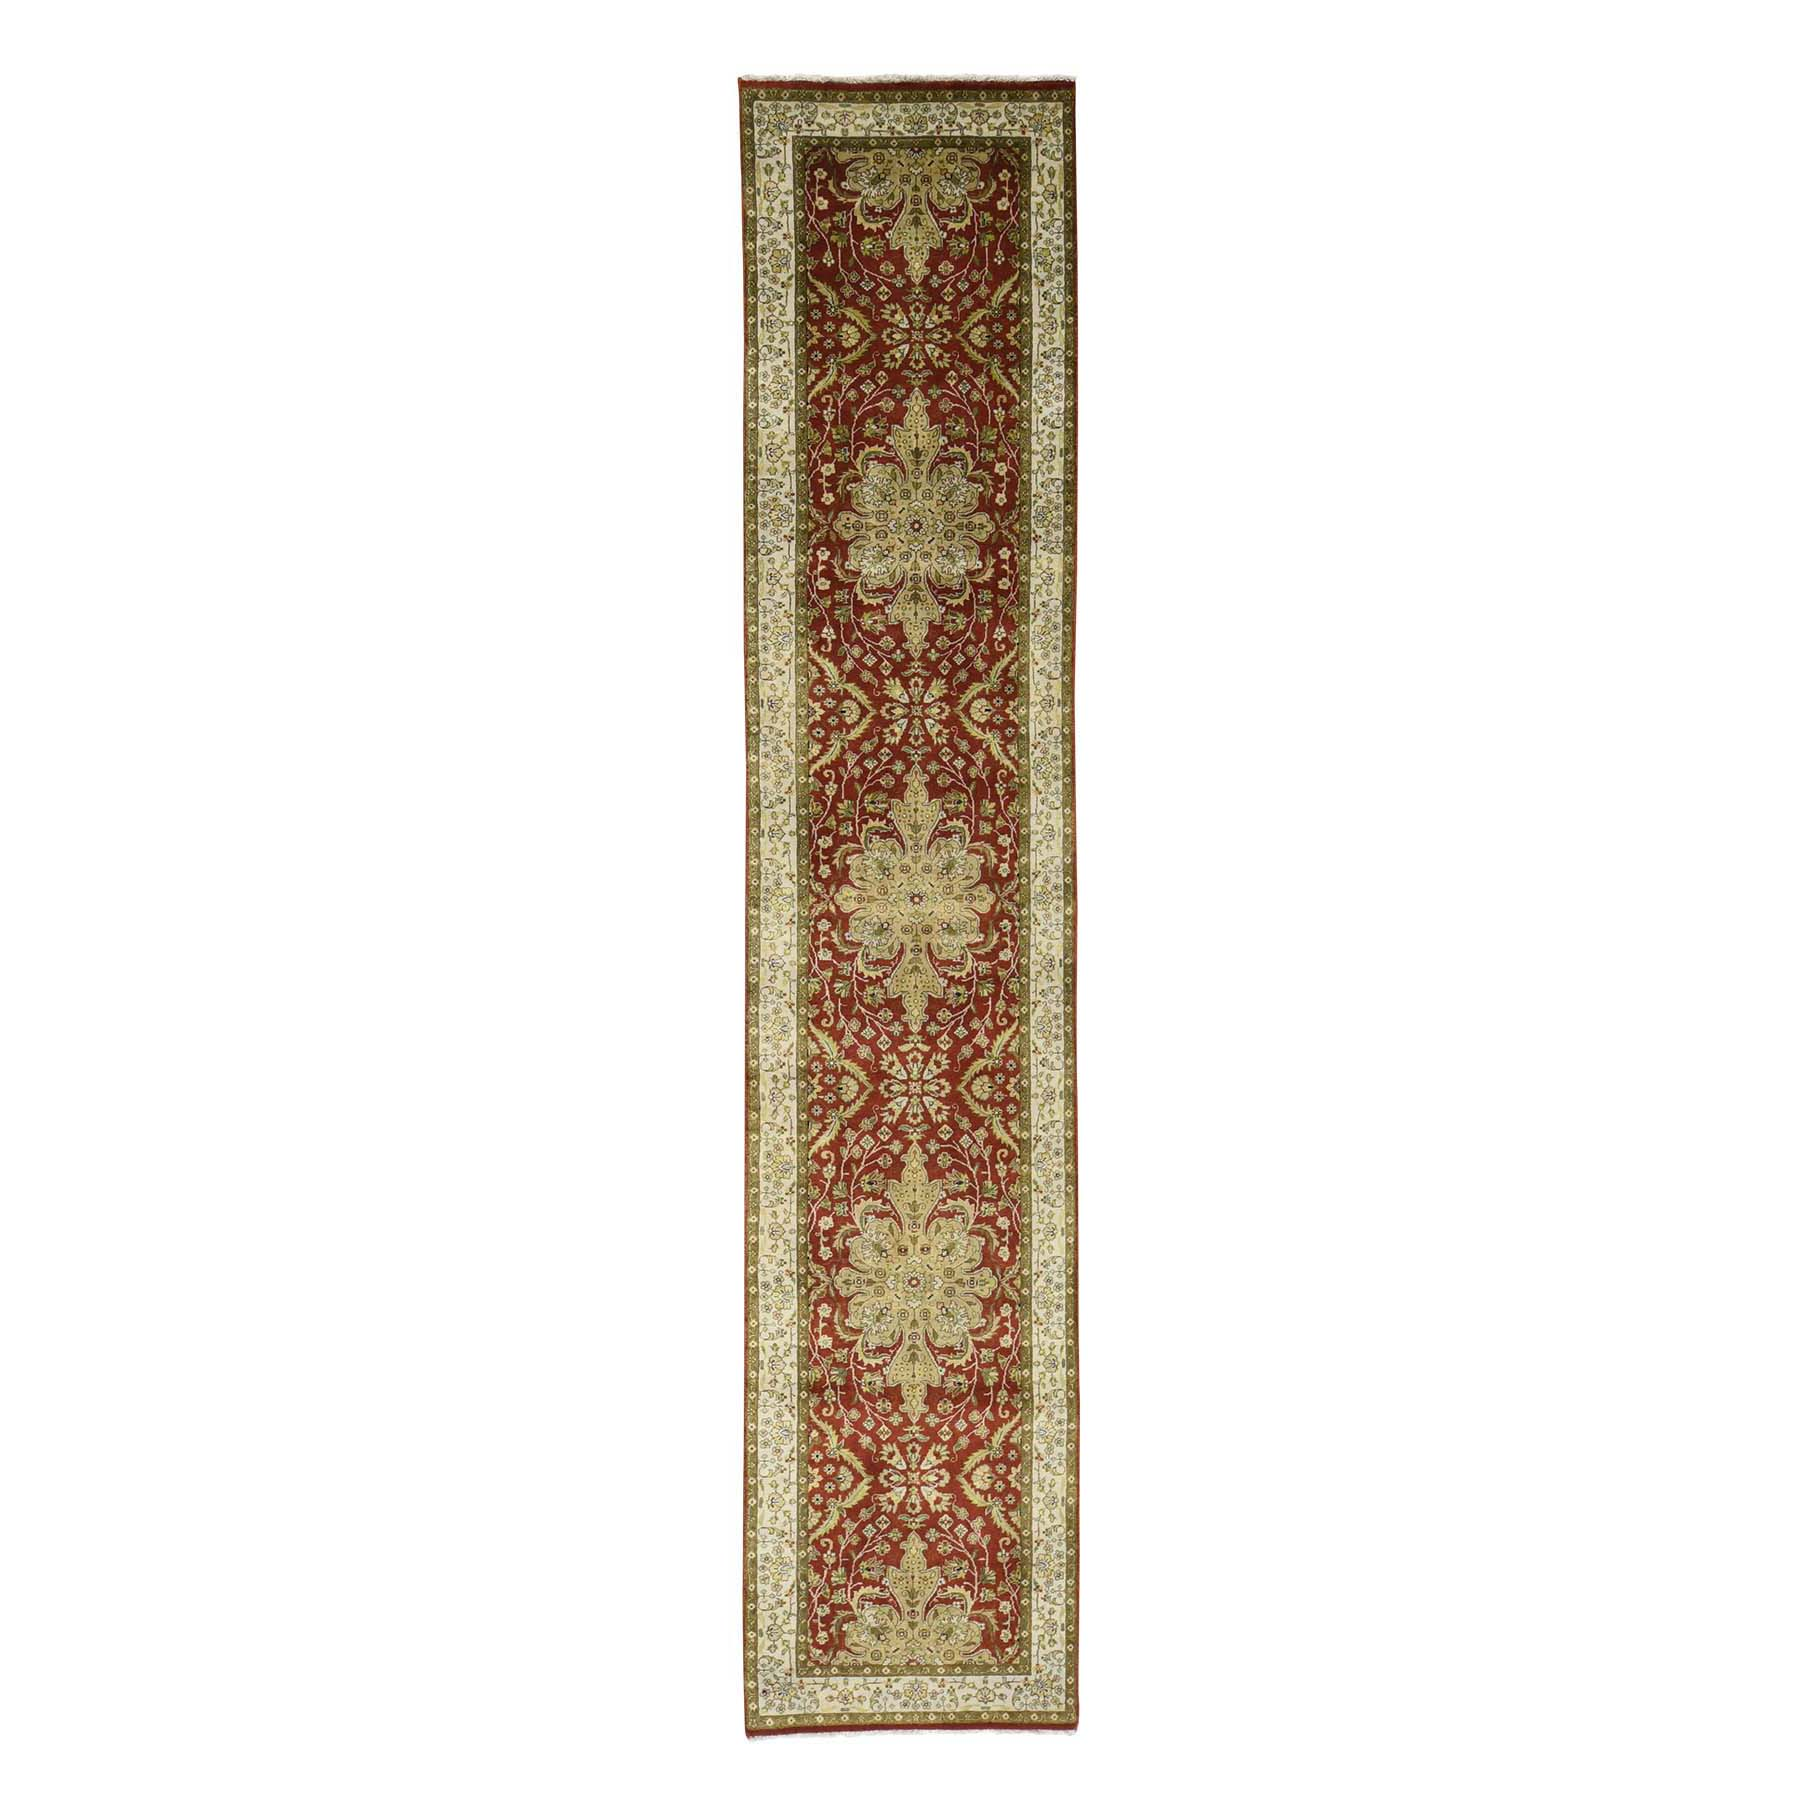 2'4''X11'5'' Kashan Revival New Zealand Wool Hand-Knotted 300 Kpsi Runner Rug moac8c6d